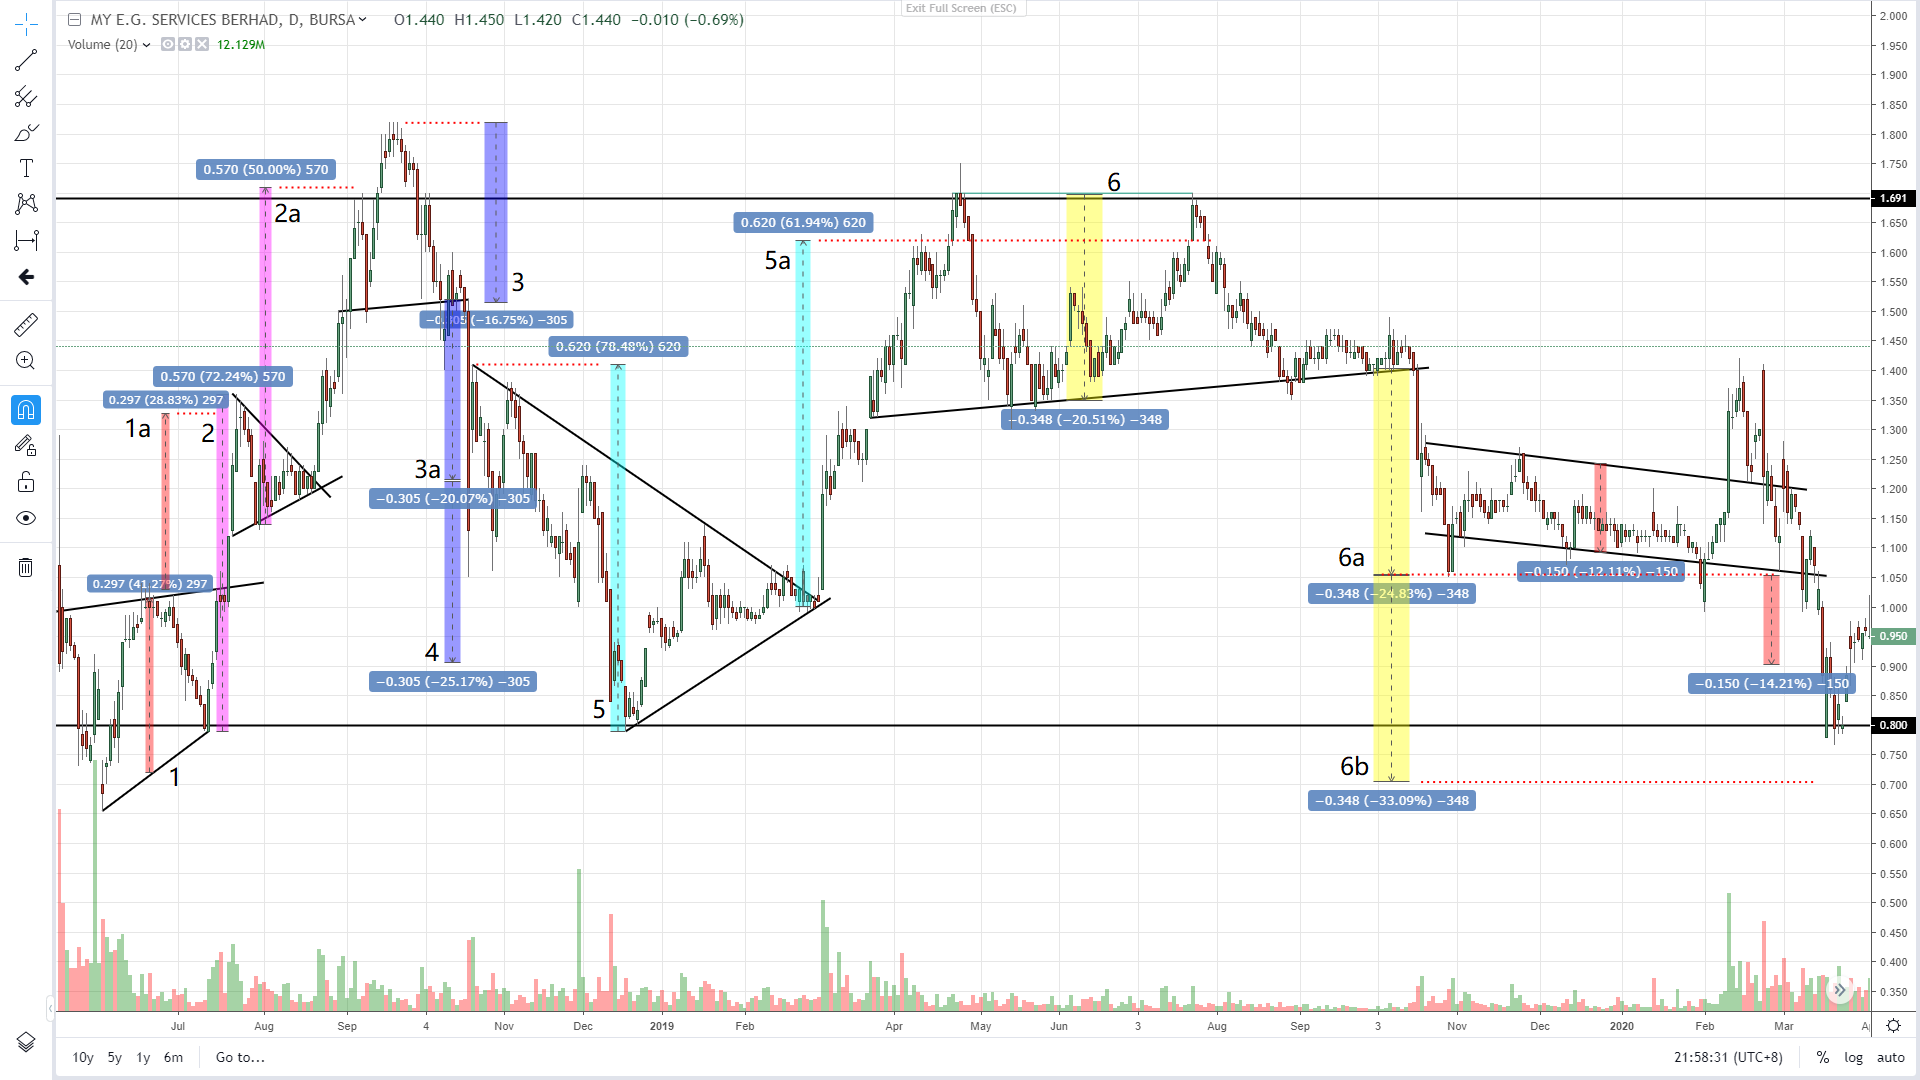 MYEG (0138) - Technical Analysis